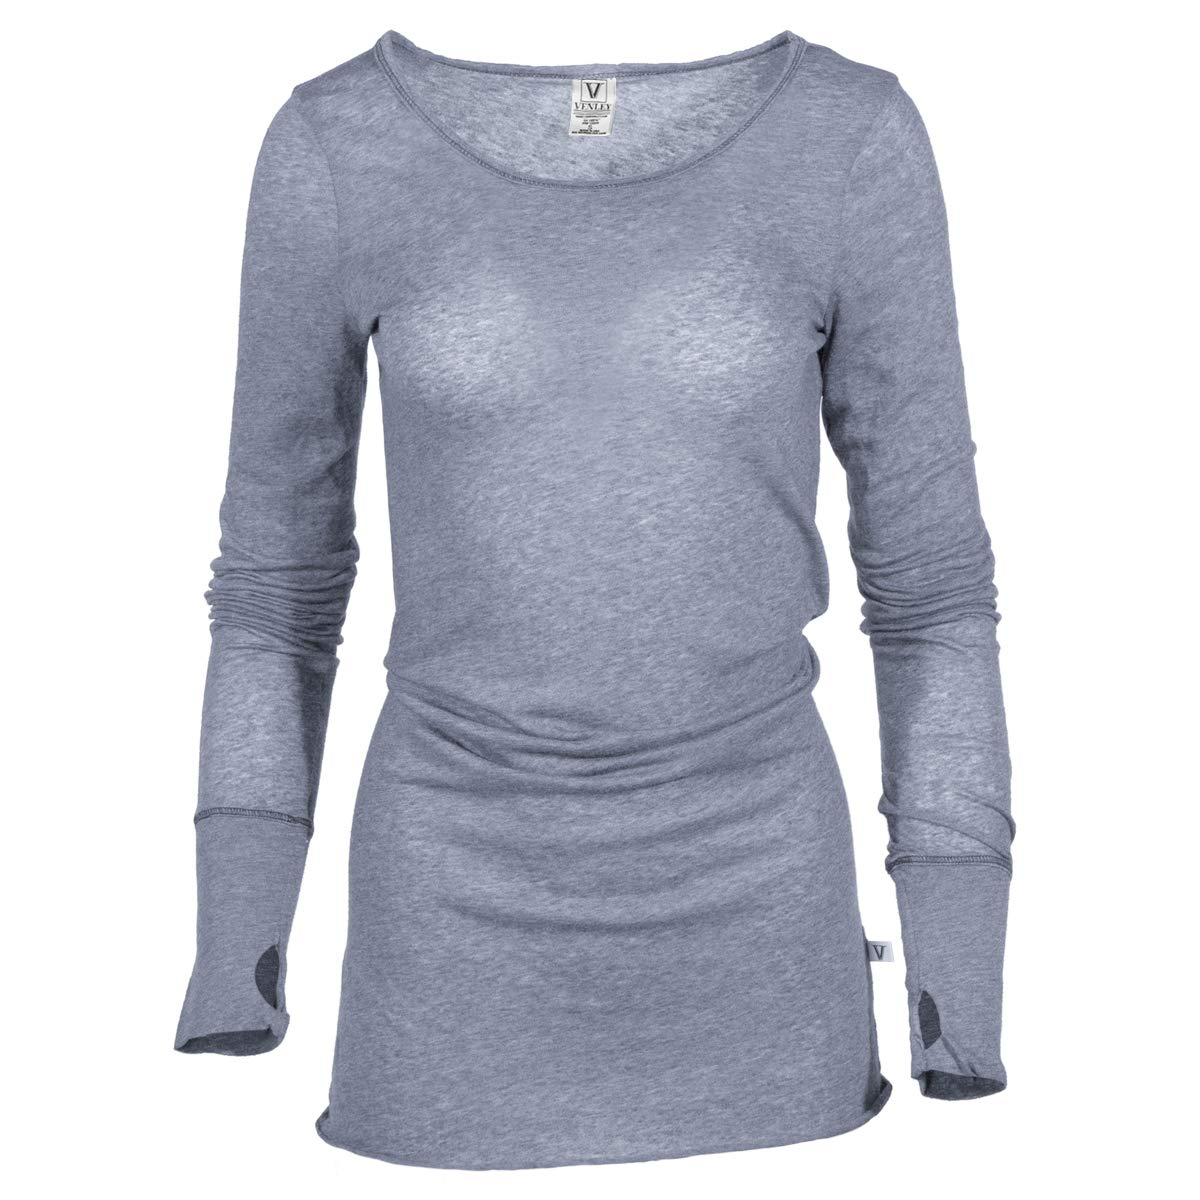 ddb2ae21 Layla- Women's Crew Neck Soft Premium Long Sleeve Tee with Thumbholes at  Amazon Women's Clothing store: